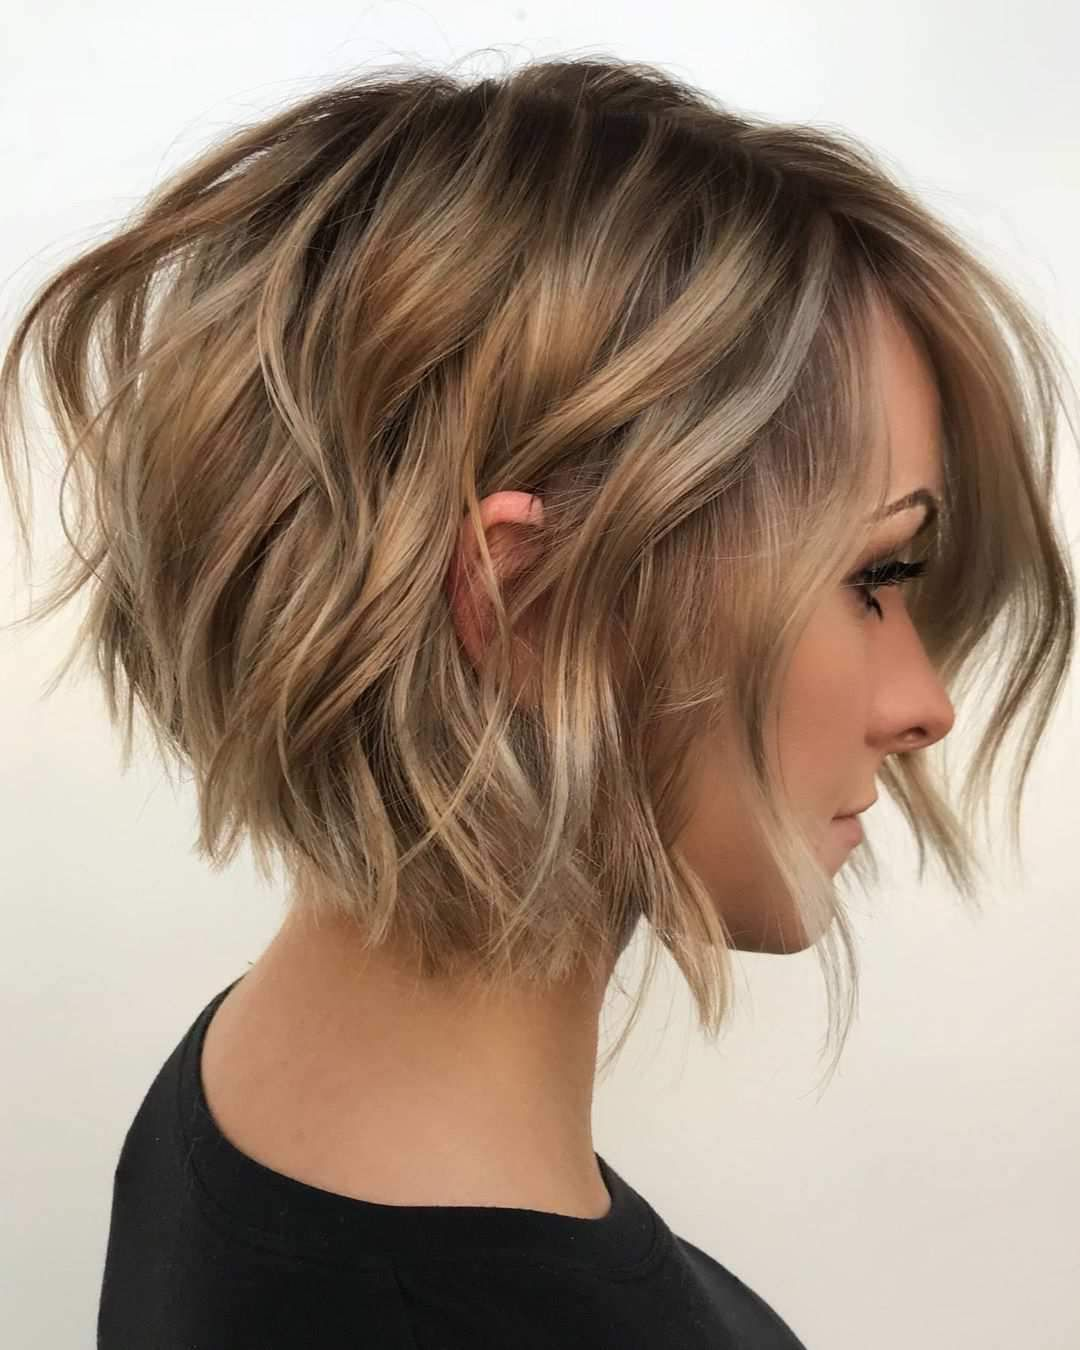 the most popular short hairstyles | hairstyles | hair styles